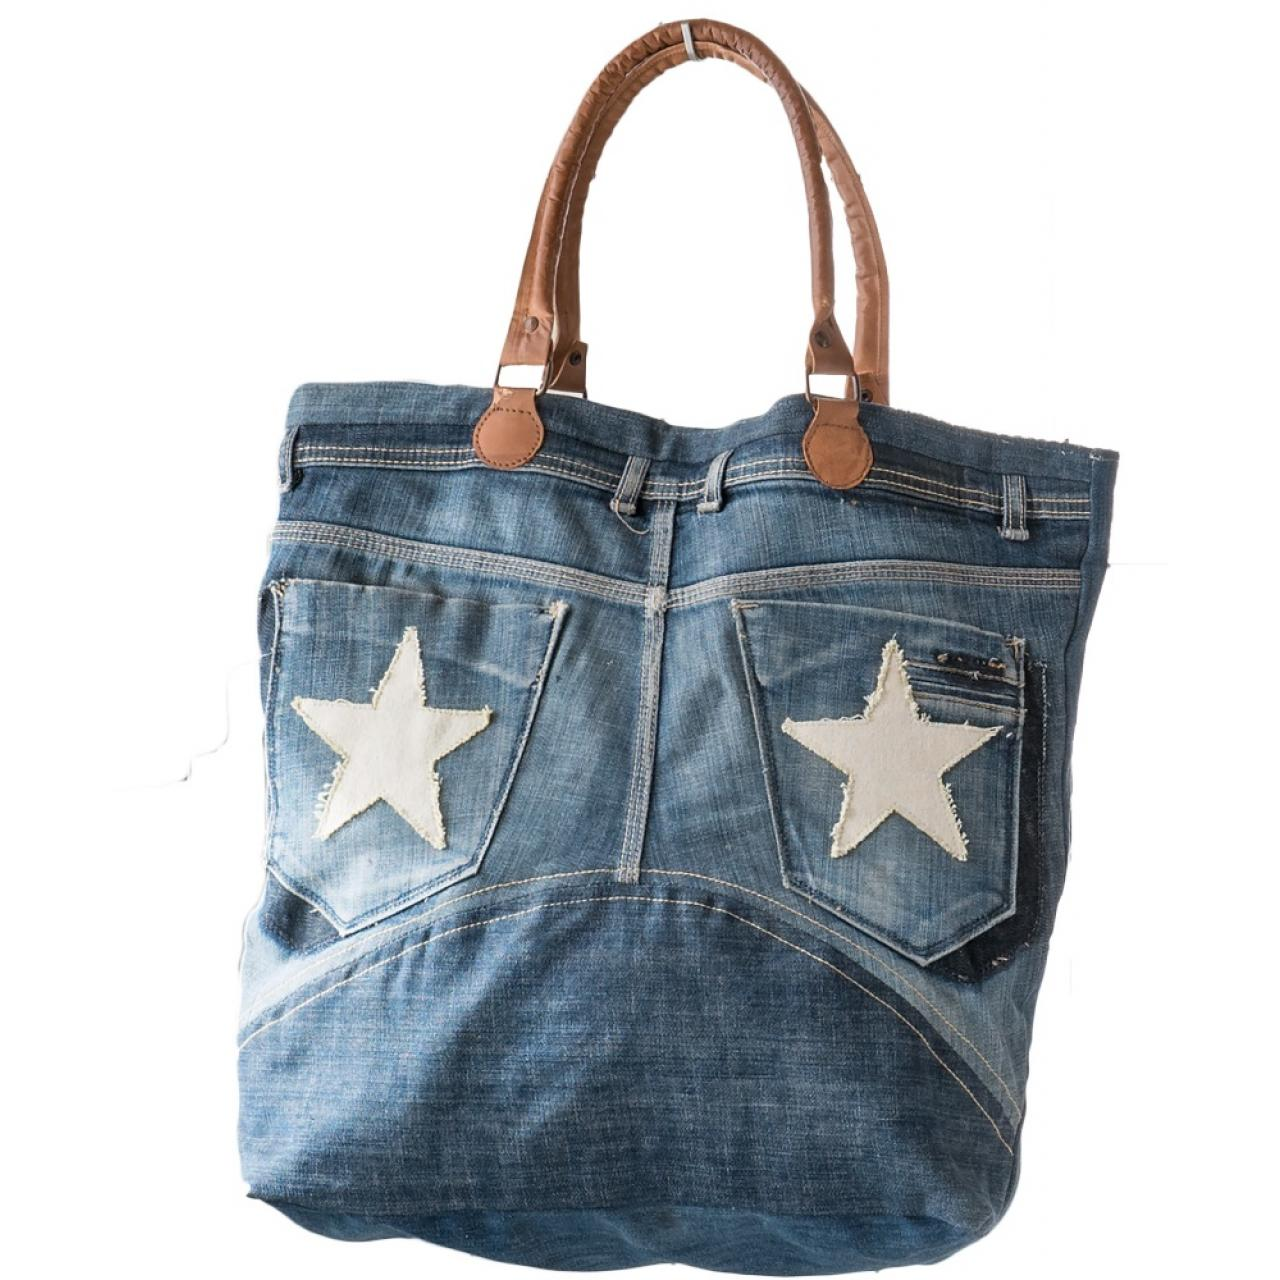 Tasche Peggy 48 - Jeans